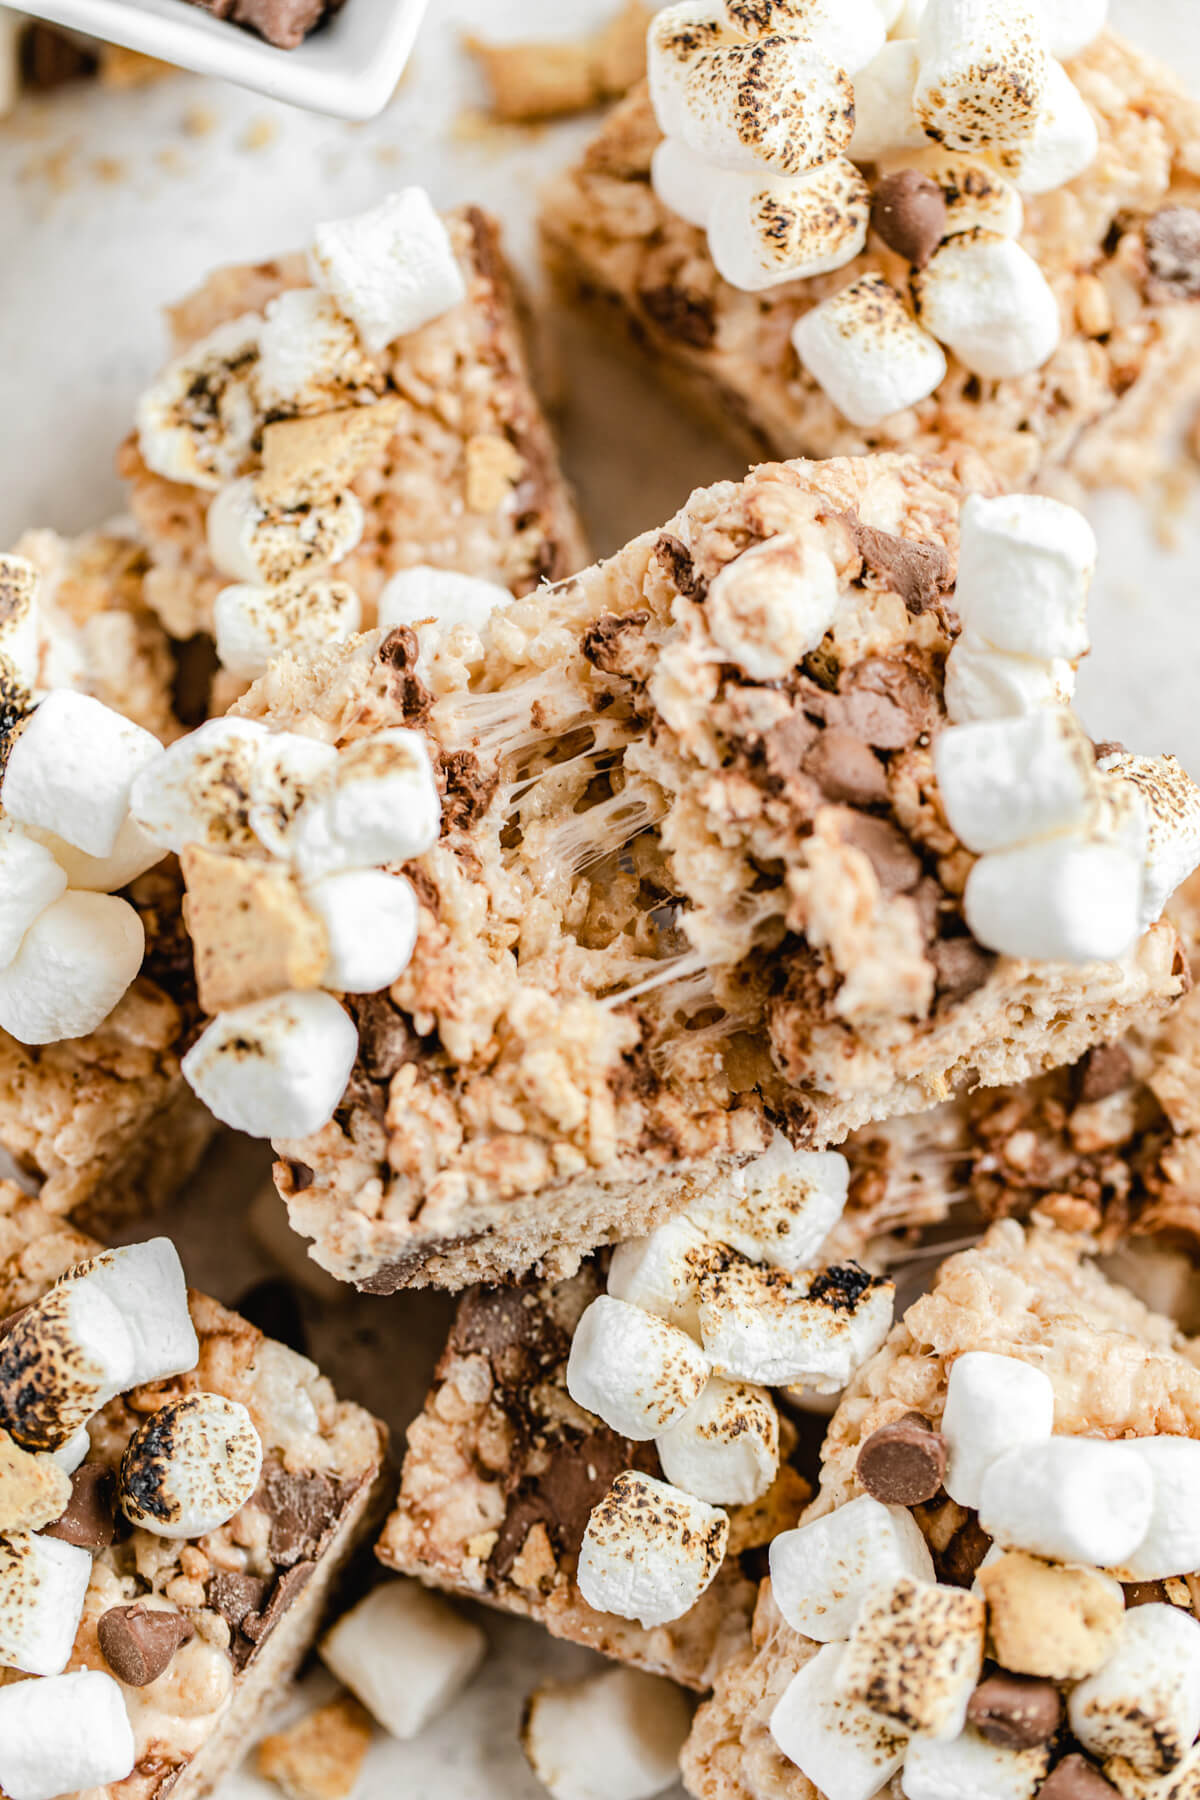 gooey marshmallow between Rice Krispie bar broken in half